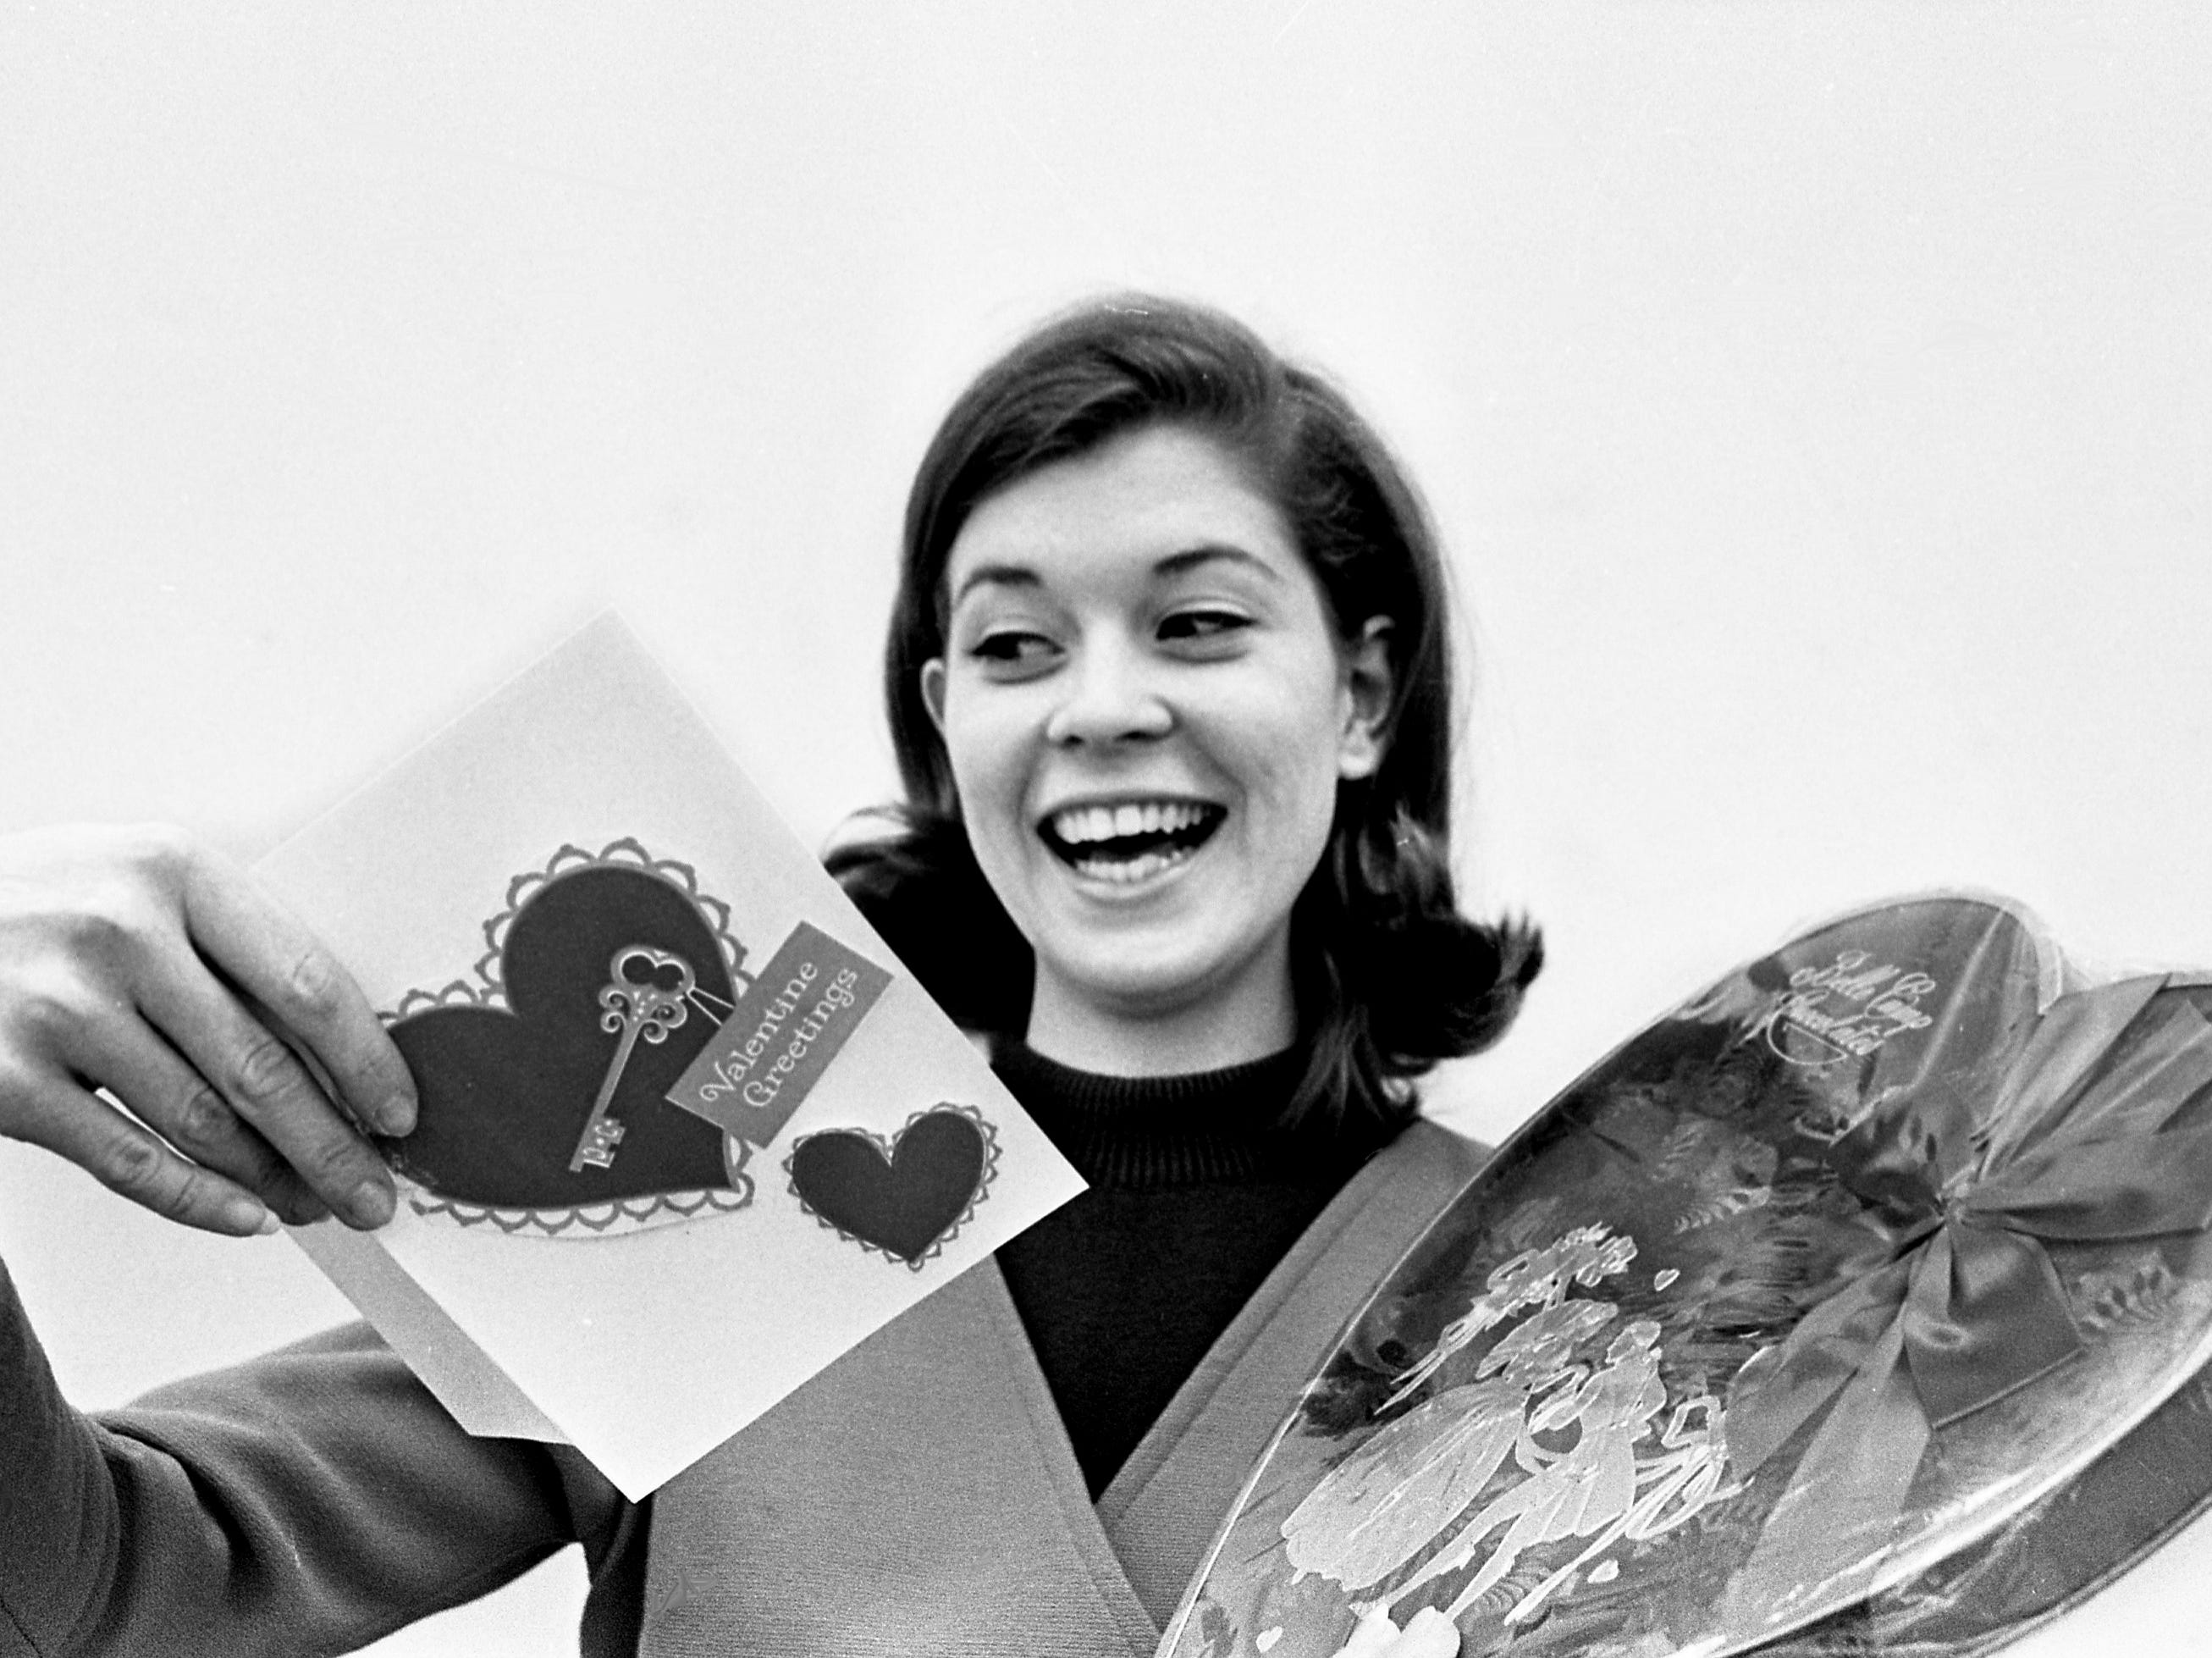 Miss Eileen Wilson of Chapel Hill, Tenn., is all smiles as she looks over requests from young men to be her valentine Feb. 13, 1968. She is one of the many ladies - both young and old - who will be receiving candy, flowers and cards the next day.